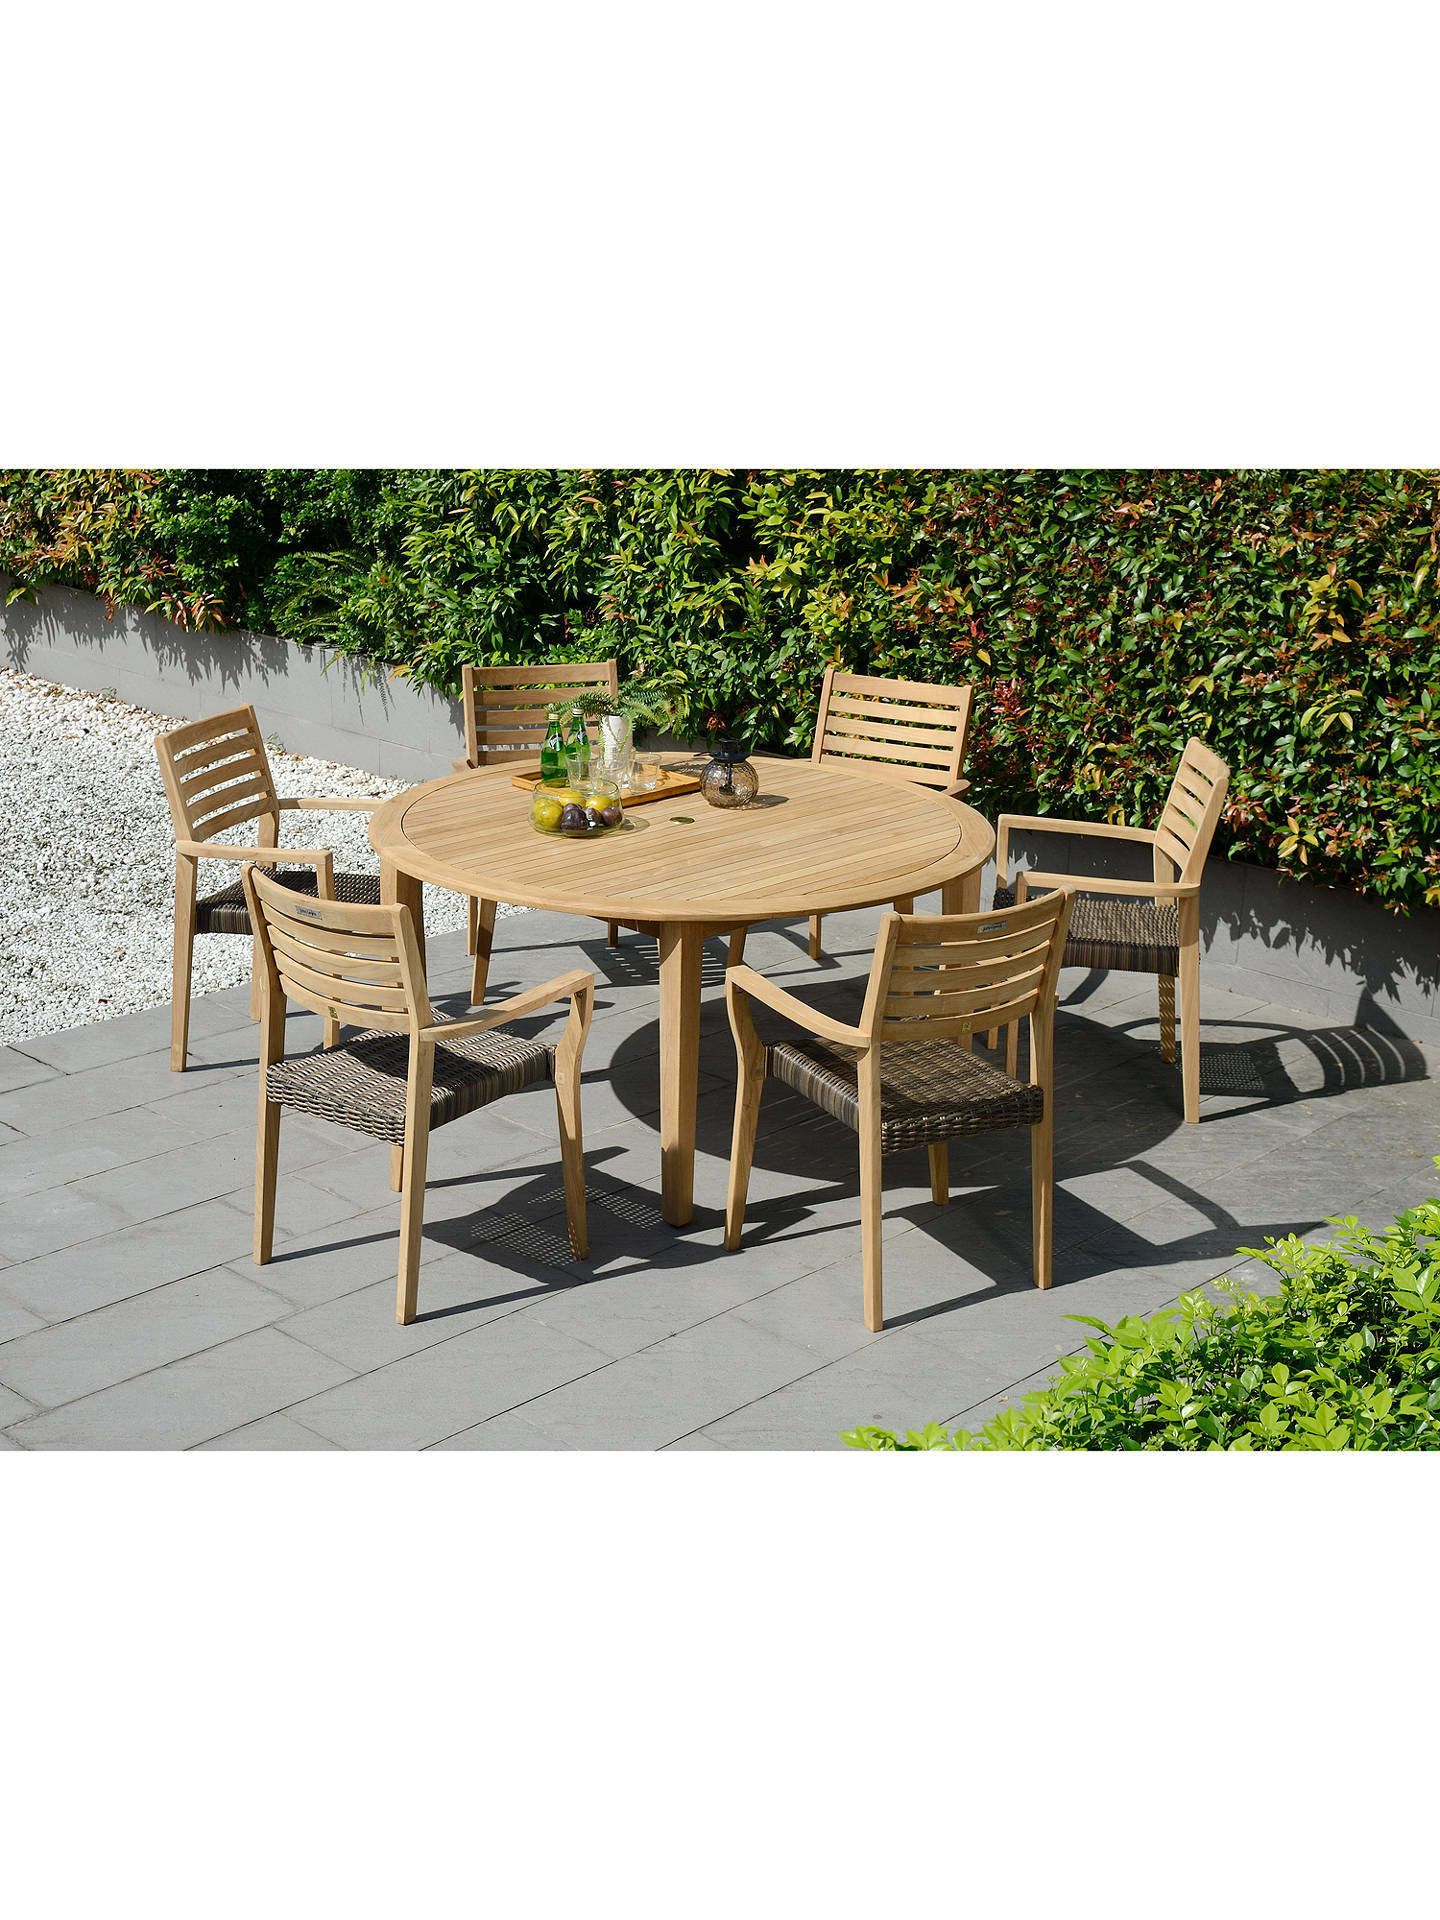 Buyjohn lewis longstock round garden dining table 6 woven stacking armchairs fsc certified